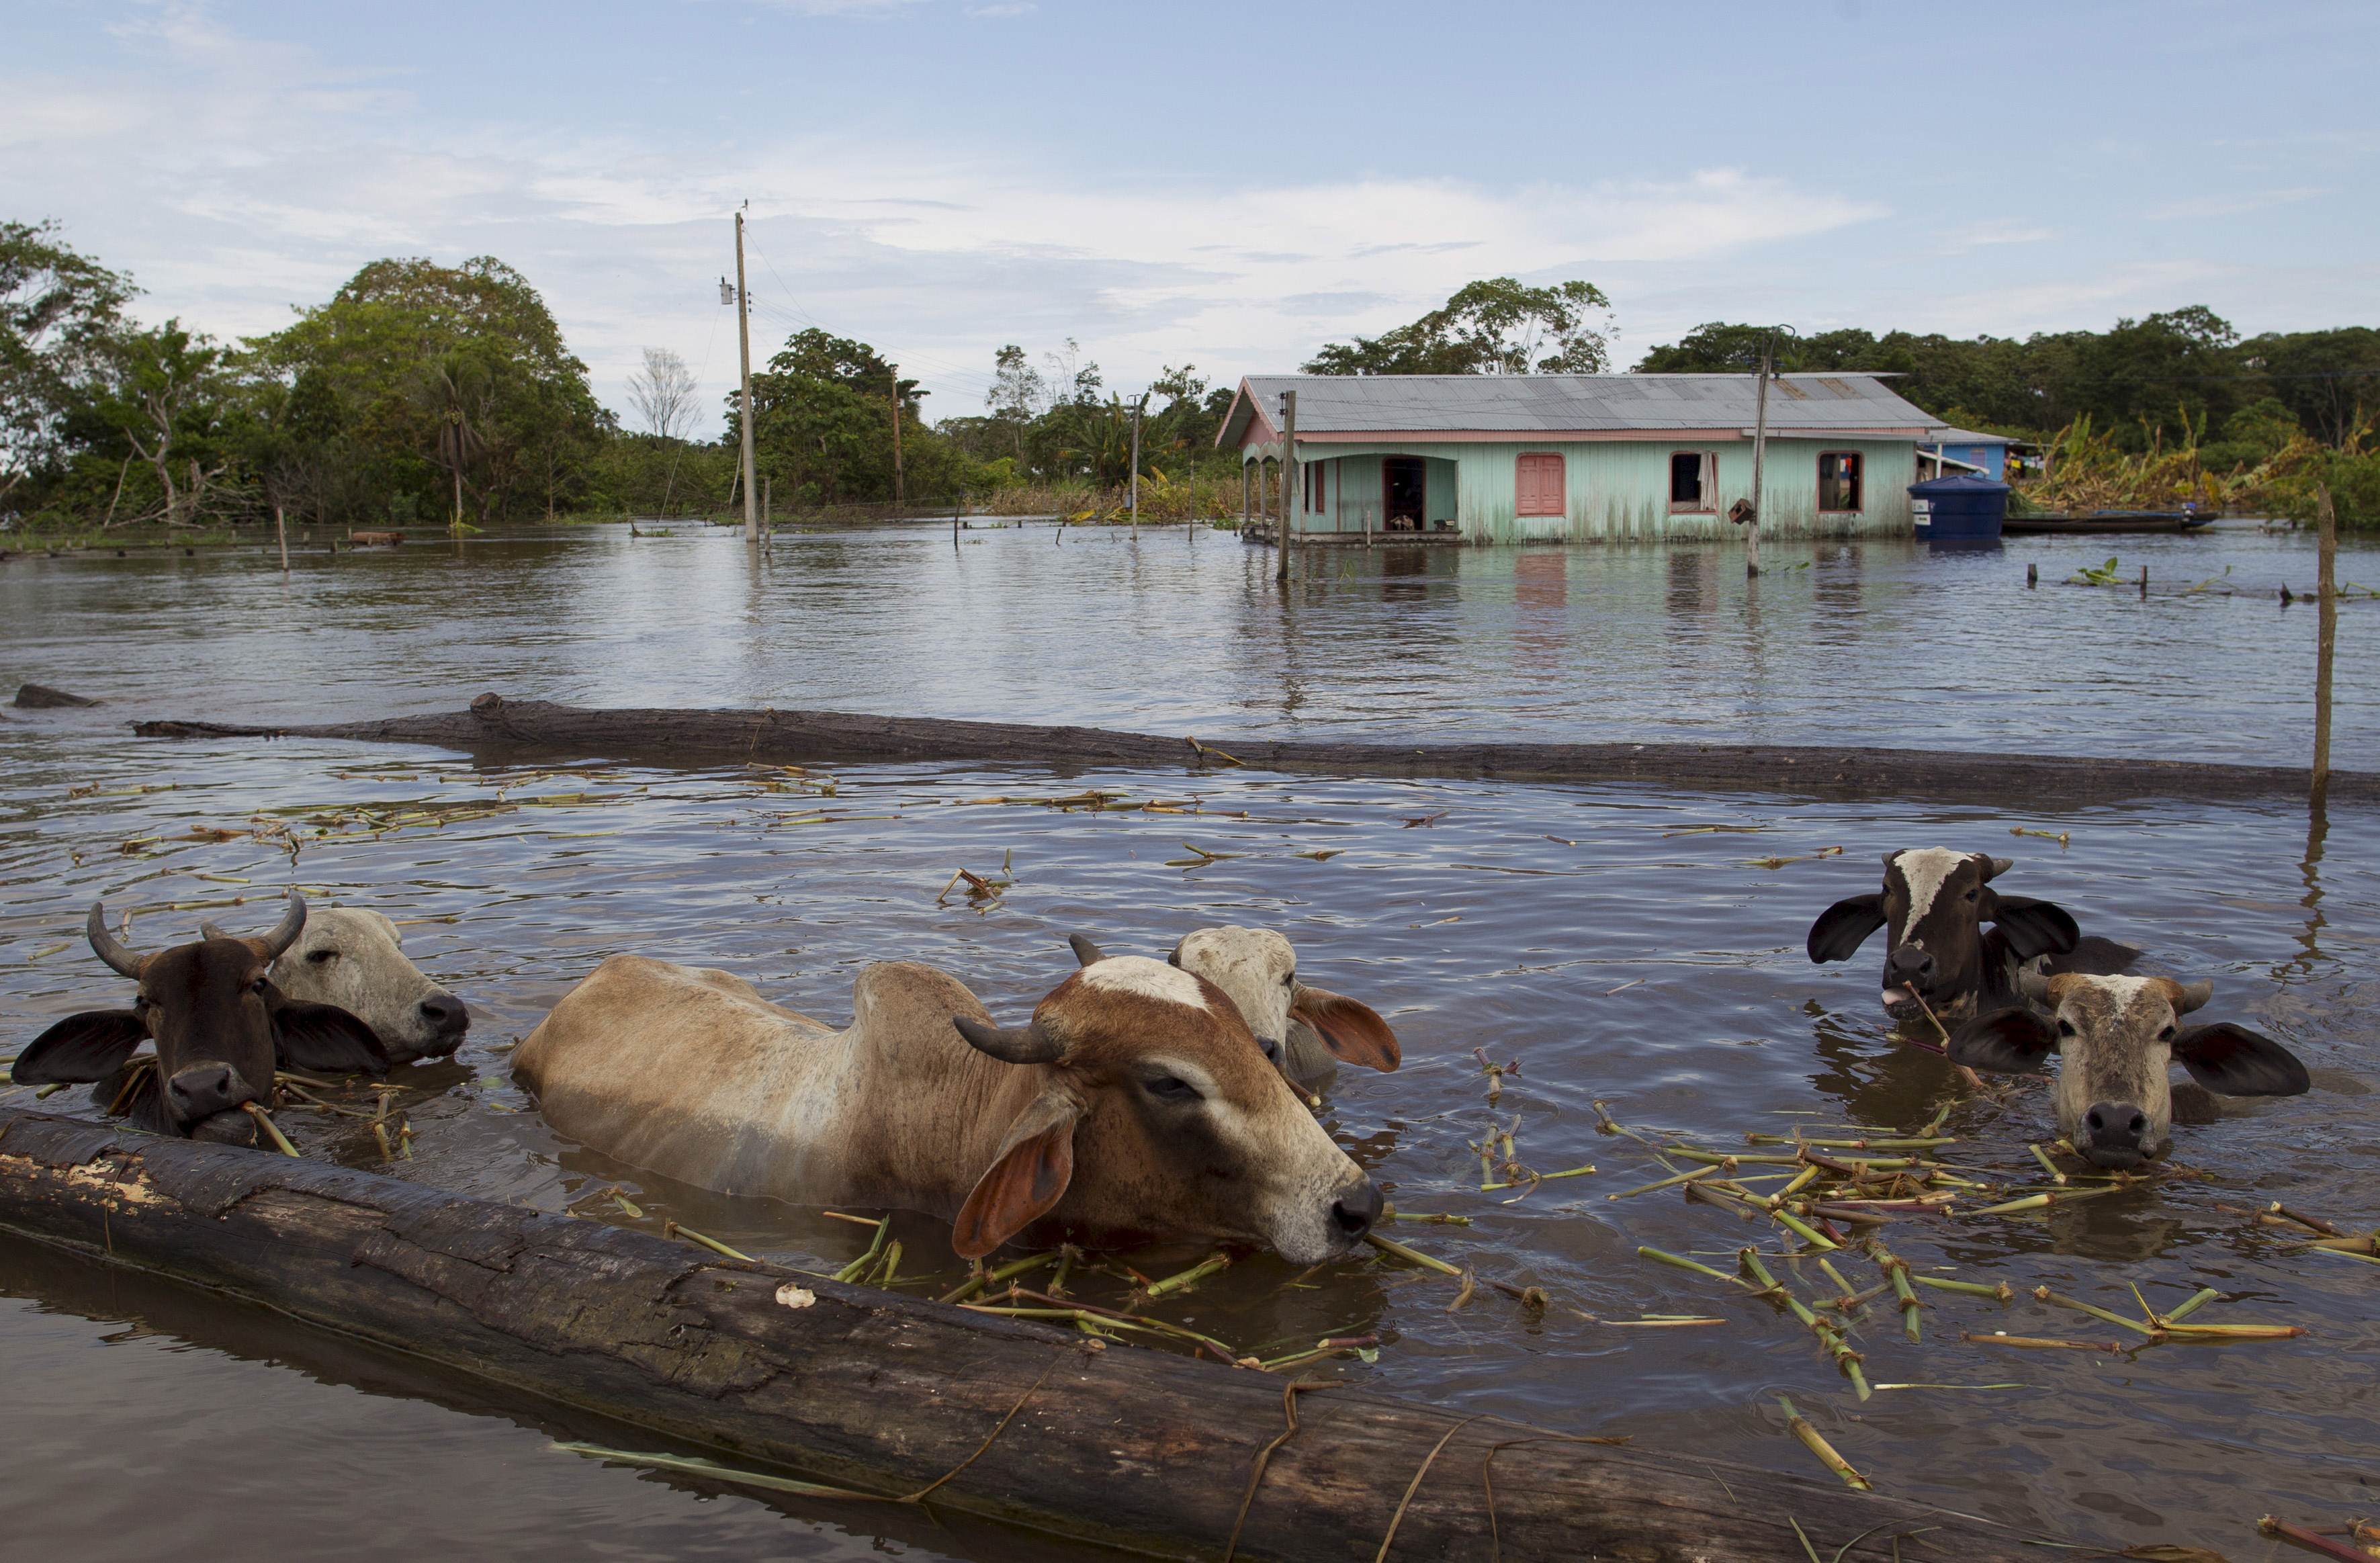 Cattle are seen in a street flooded by the rising Rio Solimoes, one of the two main branches of the Amazon River, in Anama, Amazonas state, Brazil on May 28, 2015. Photo by Bruno Kelly/Reuters